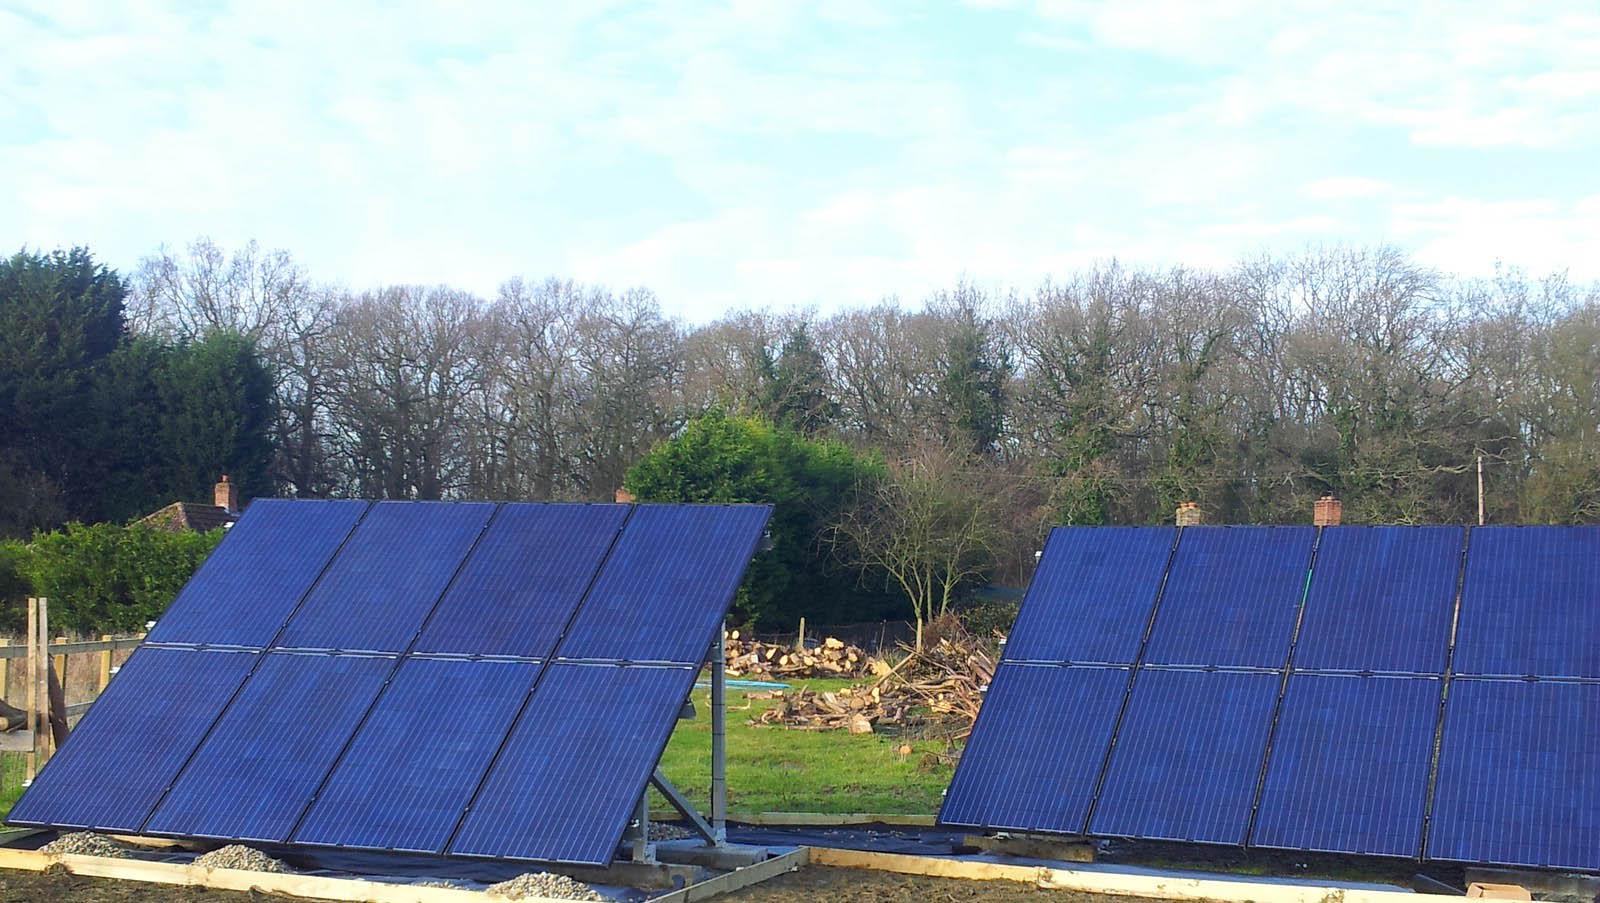 Solar farm near Cambridge generating large amount of electricity for the houses nearby